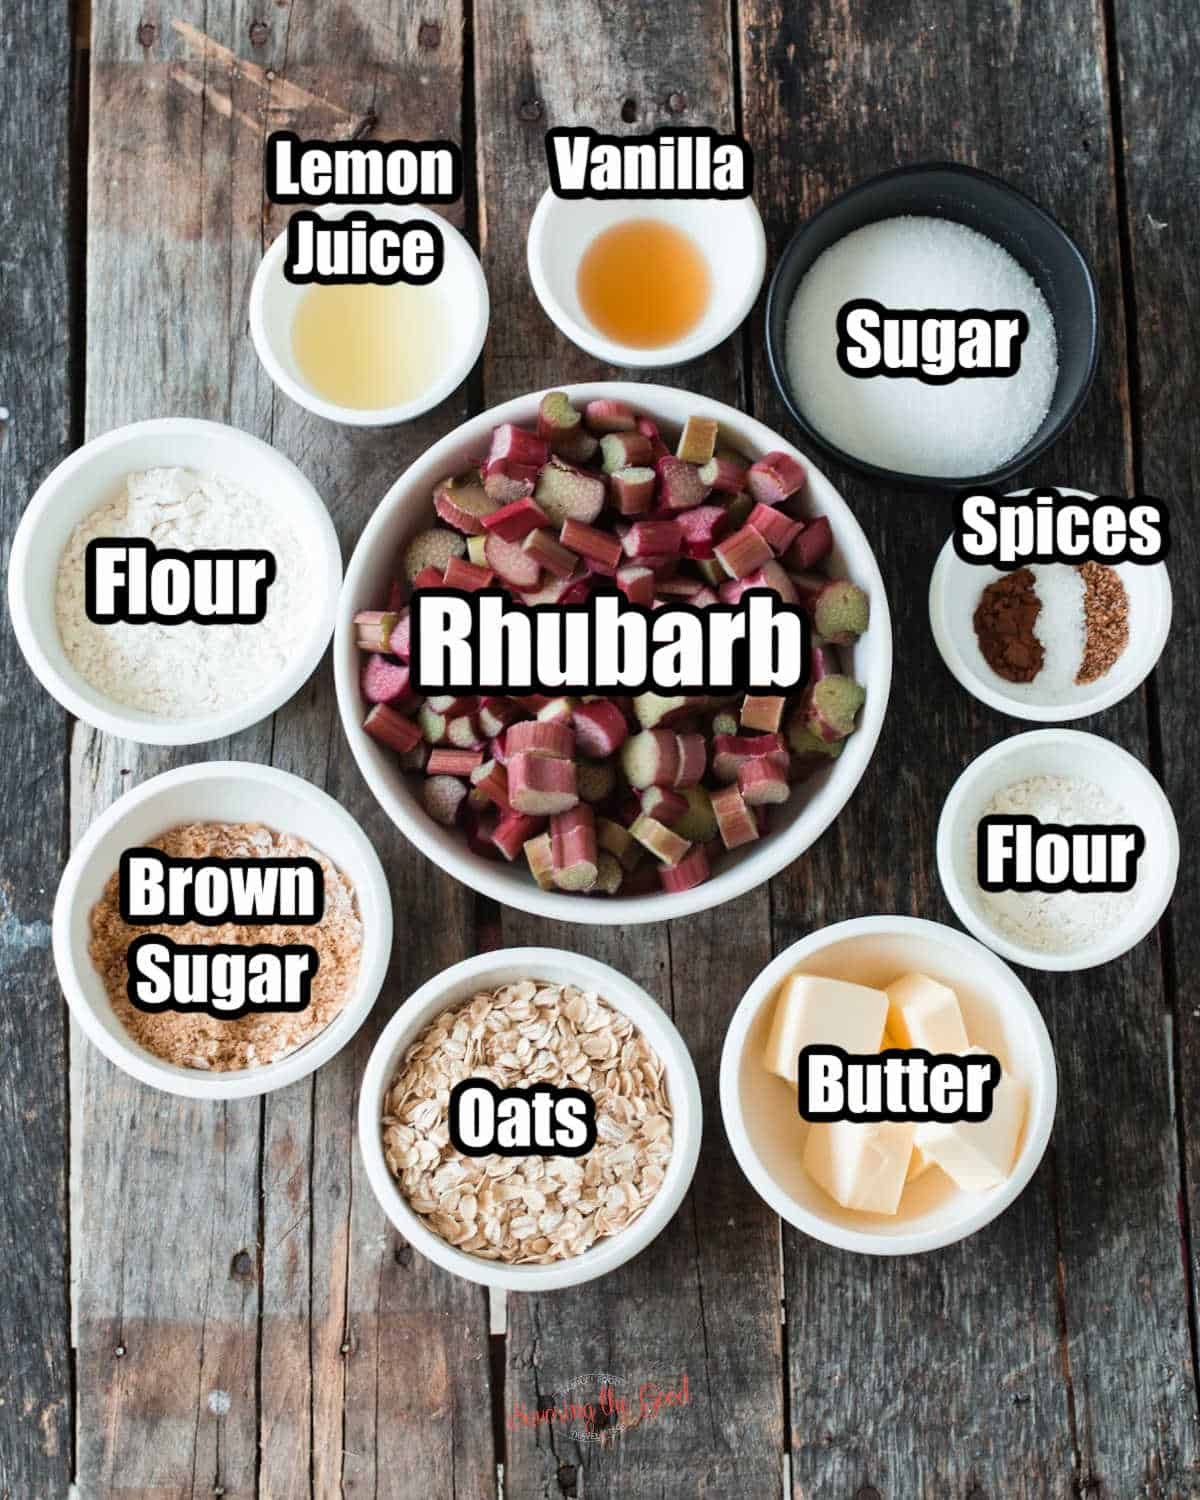 raw rhubarb, butter, flour, spices, sugar, vanilla extract, lemon juice, more flour, brown sugar, oats in bowls on a table with text overlay labels